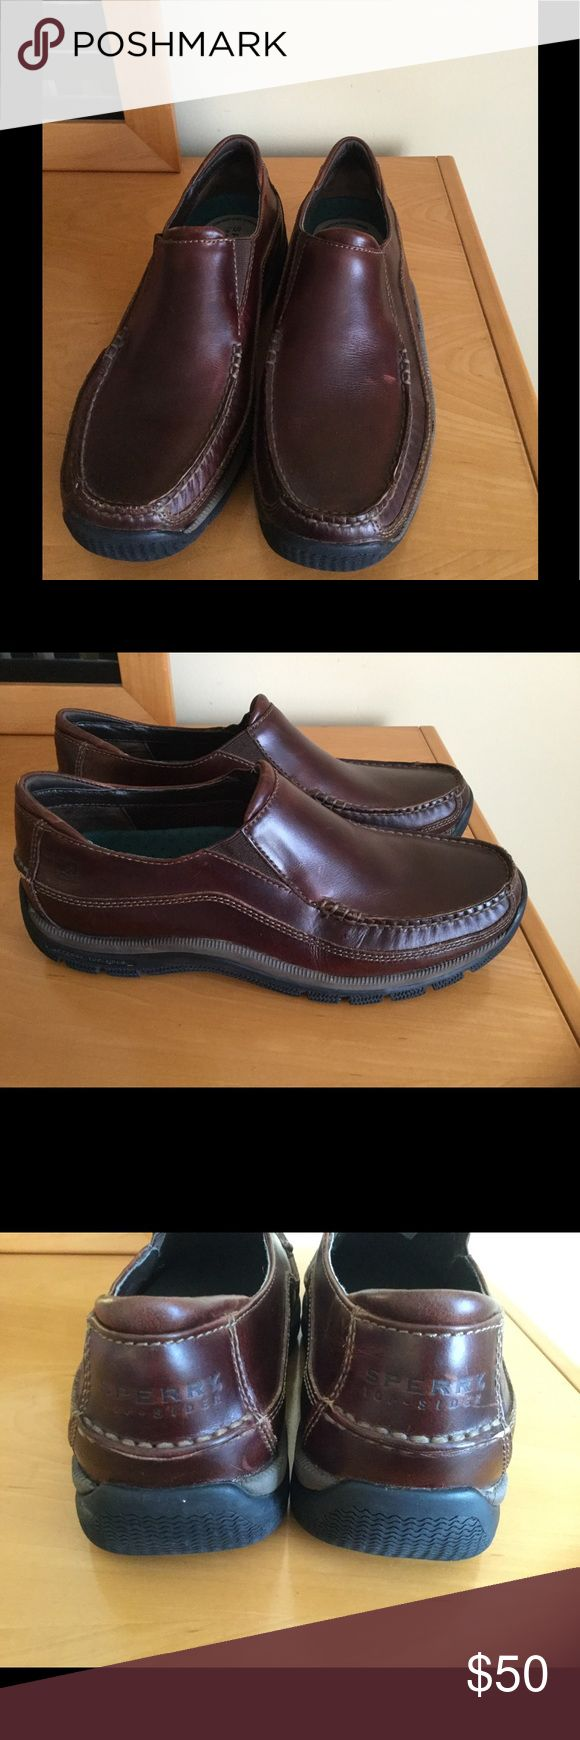 Sperry Top sider brown leather boat shoes In very good pre owned condition , only tiny scuff on one of the shoe surface ( can be fixed with shoe cream / wax ) 95% life left on them .❌Price firm unless is bundled ❌ Sperry Top-Sider Shoes Boat Shoes